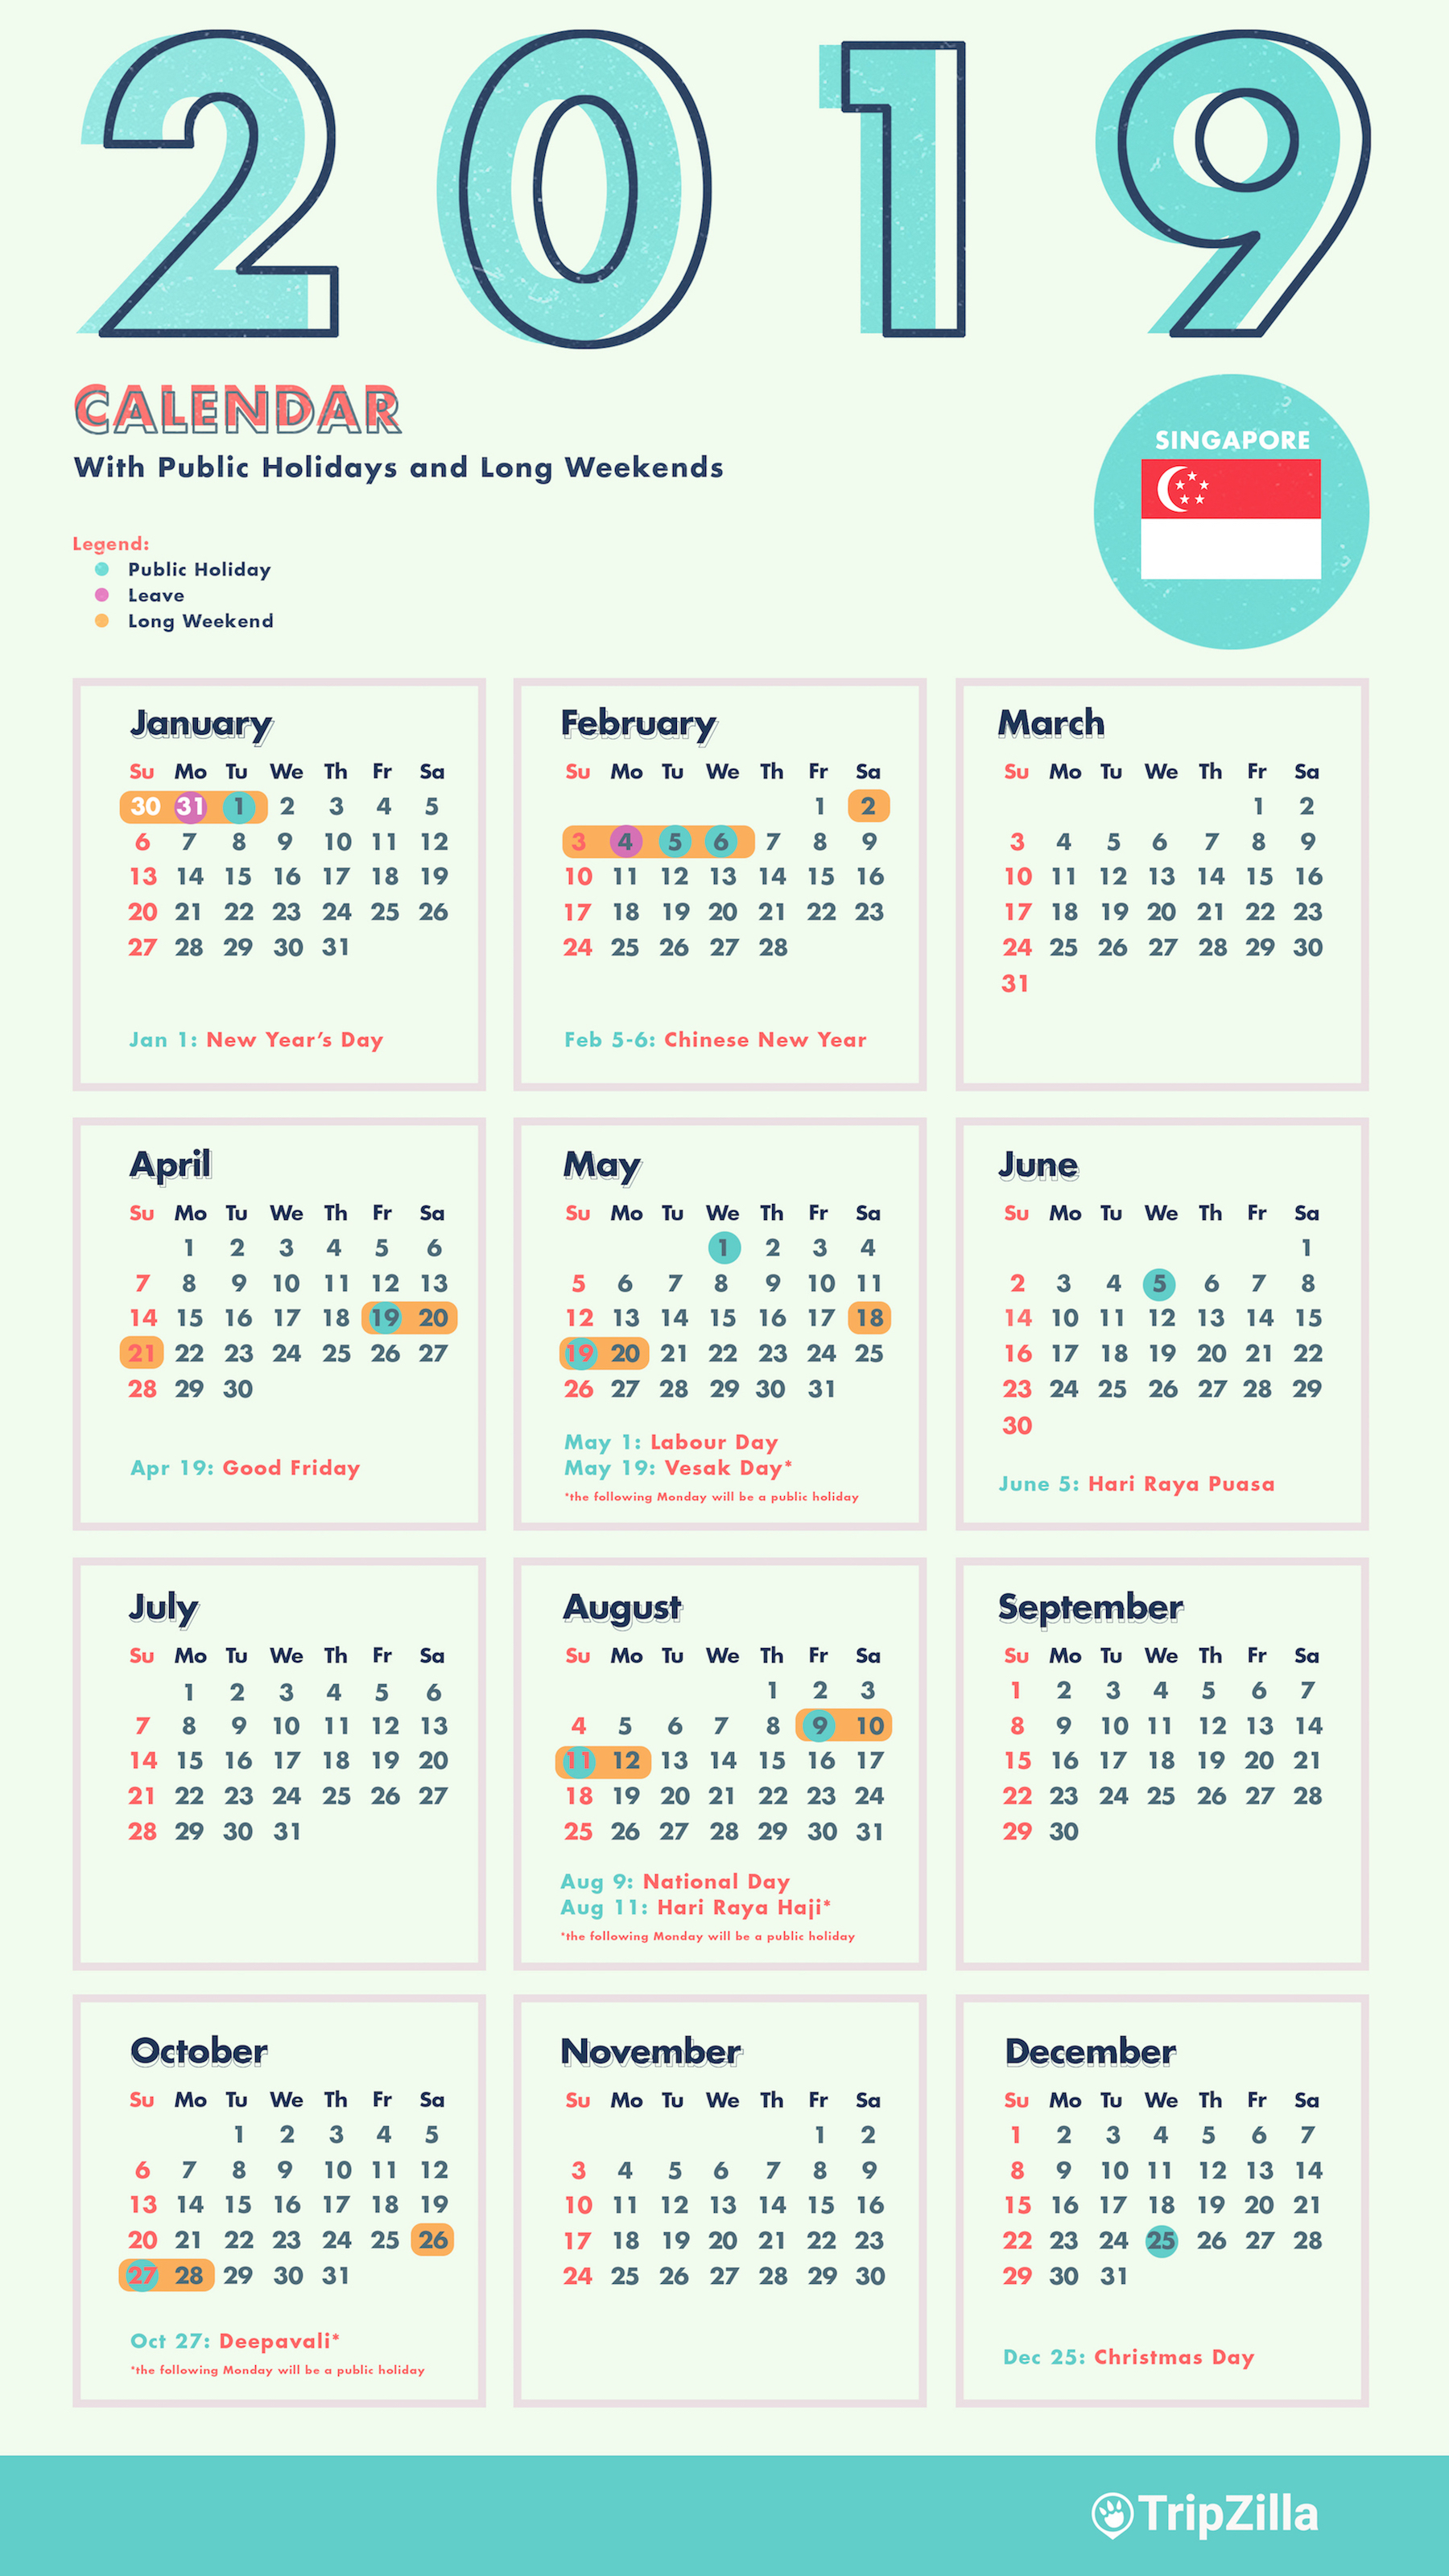 6 Long Weekends In Singapore In 2019 Bonus Calendar Cheatsheet